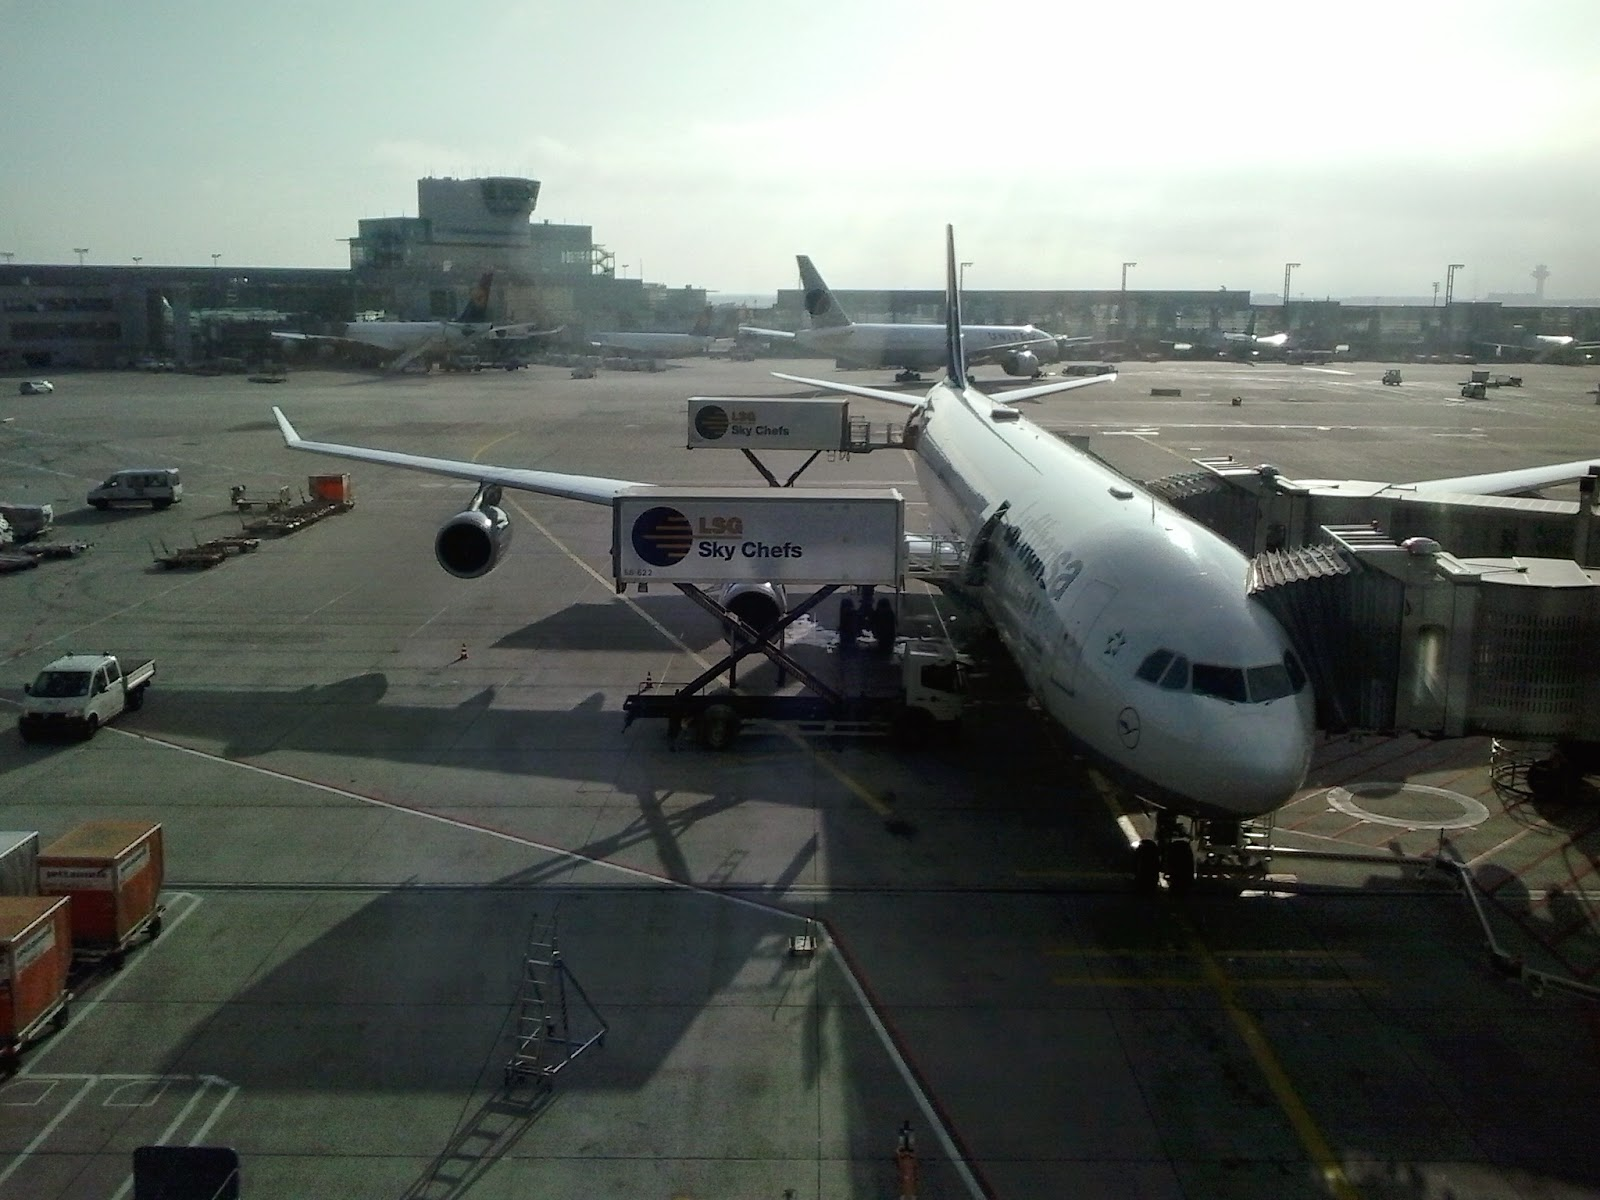 ... recommended not to get stuck again (see what happened last time) in a  random airport ee88416fa989